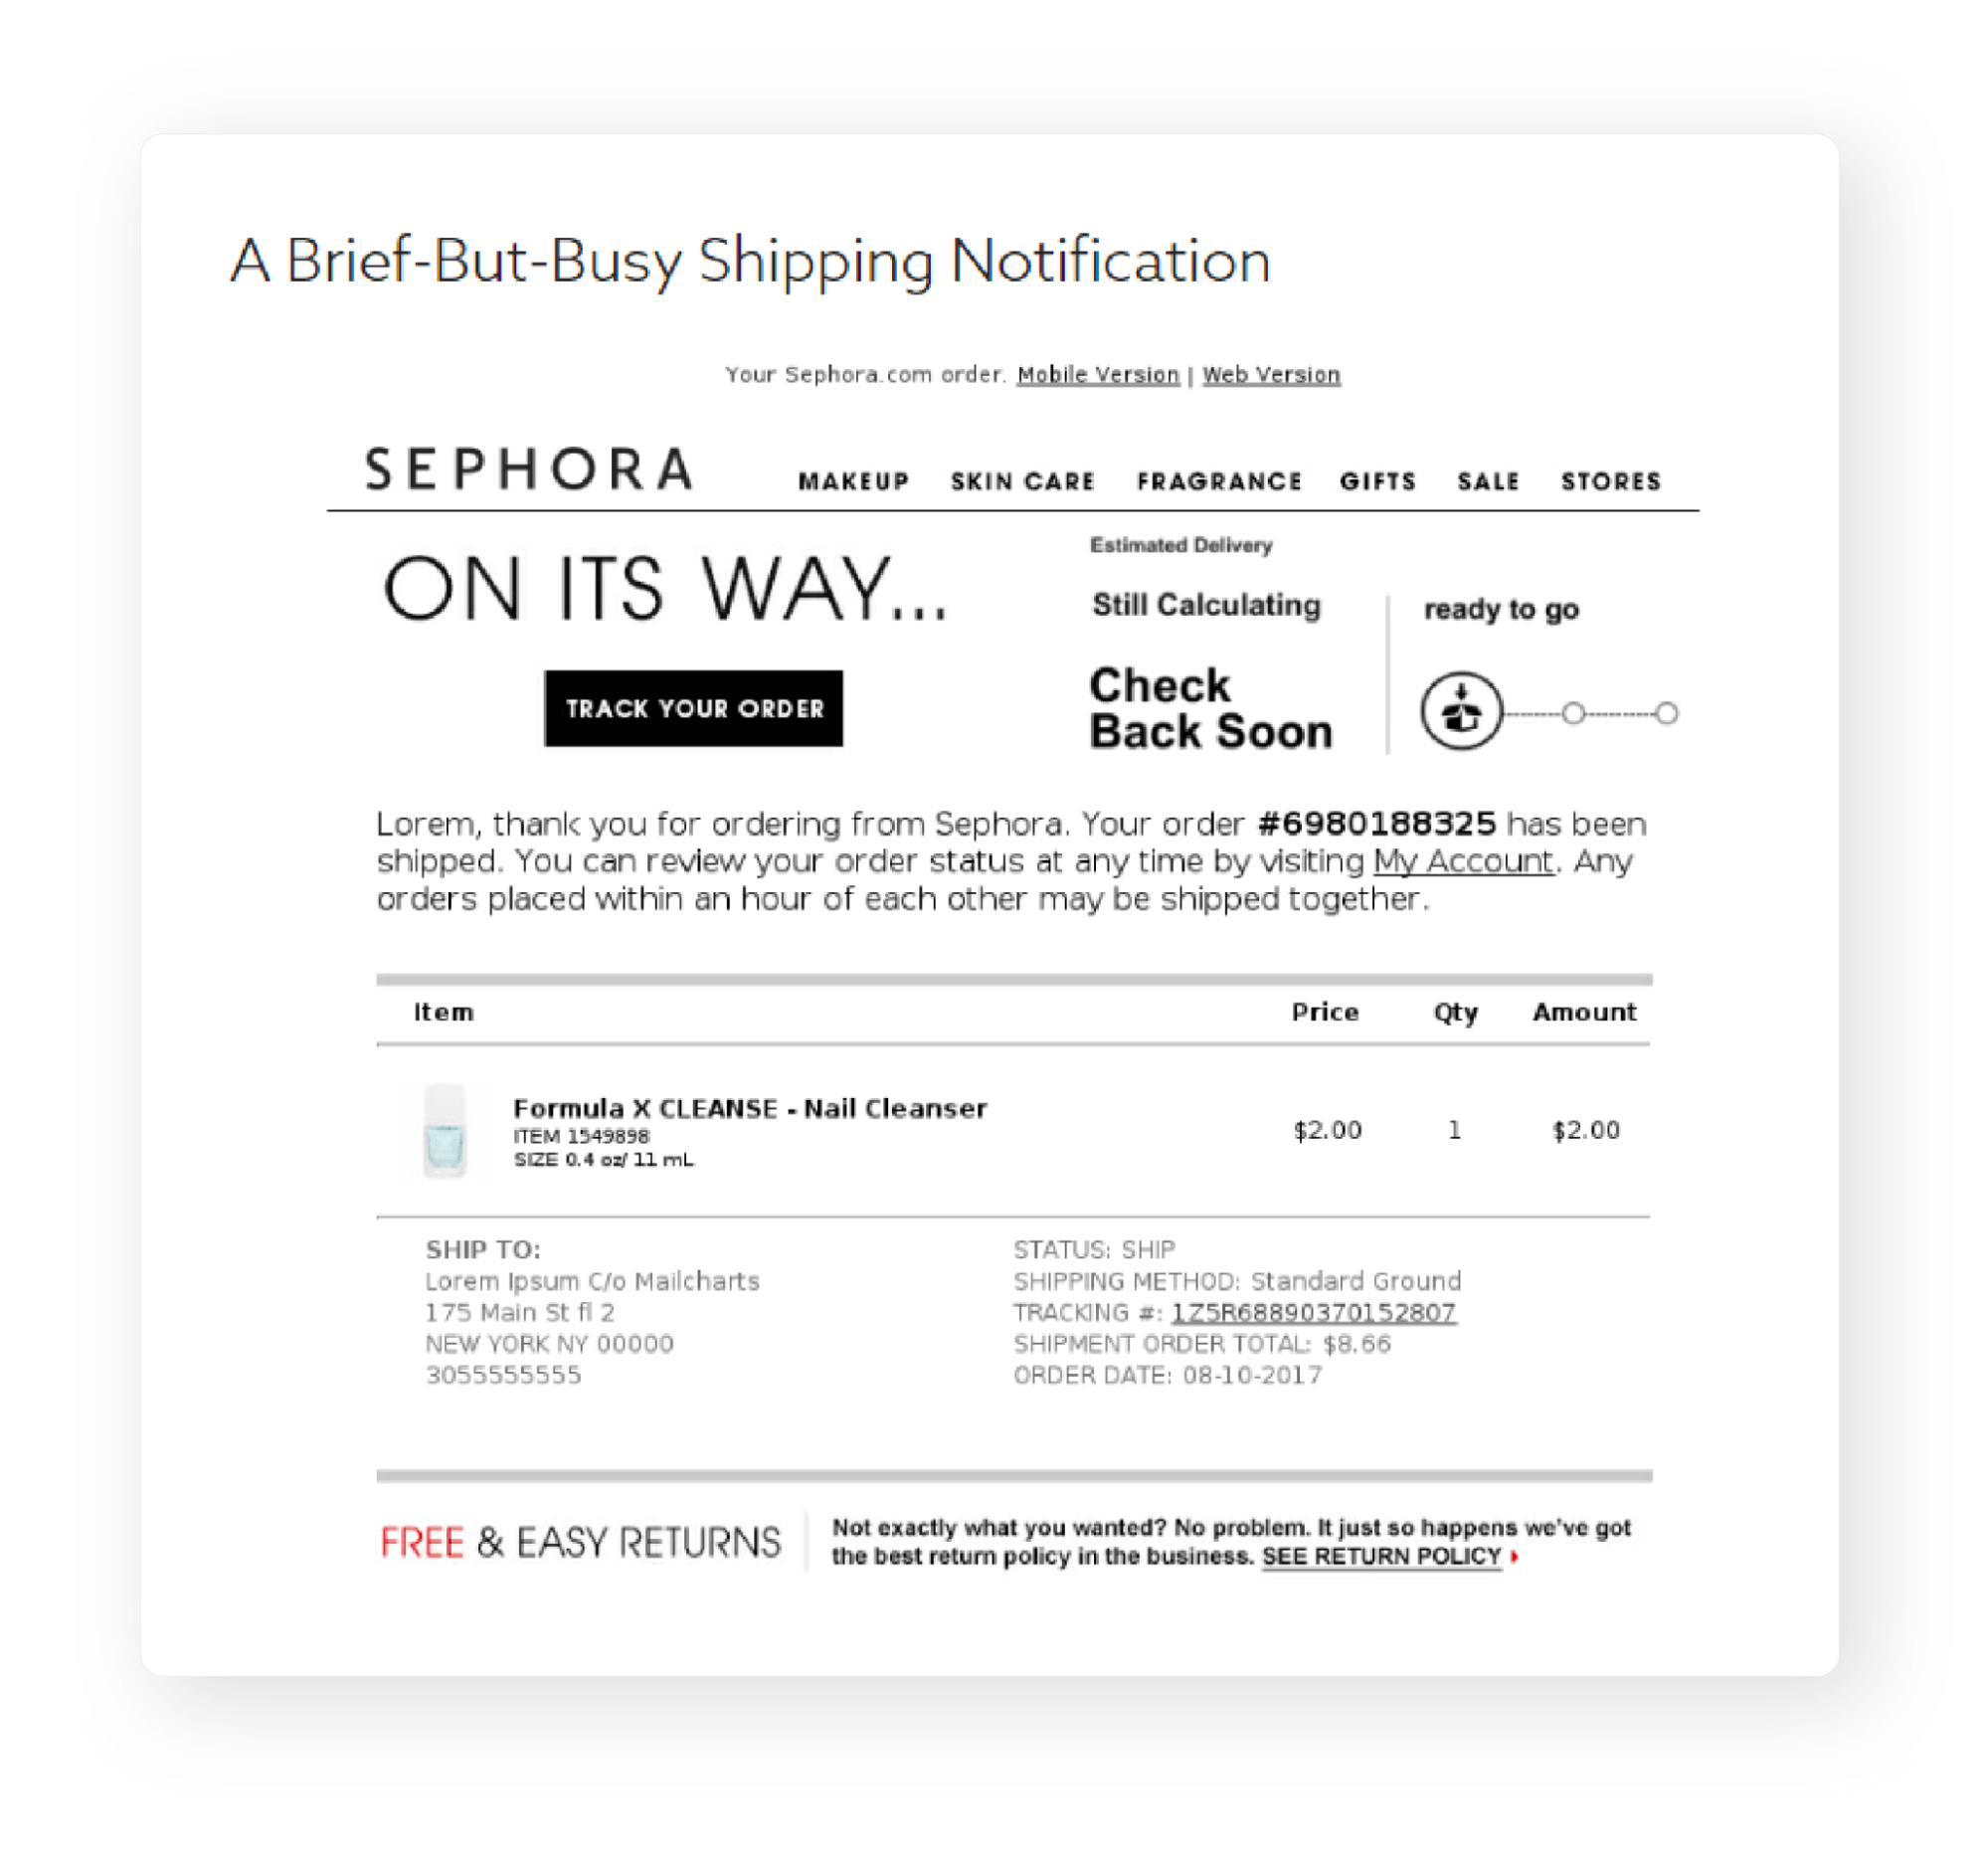 Shipping Notification Email by Sephora